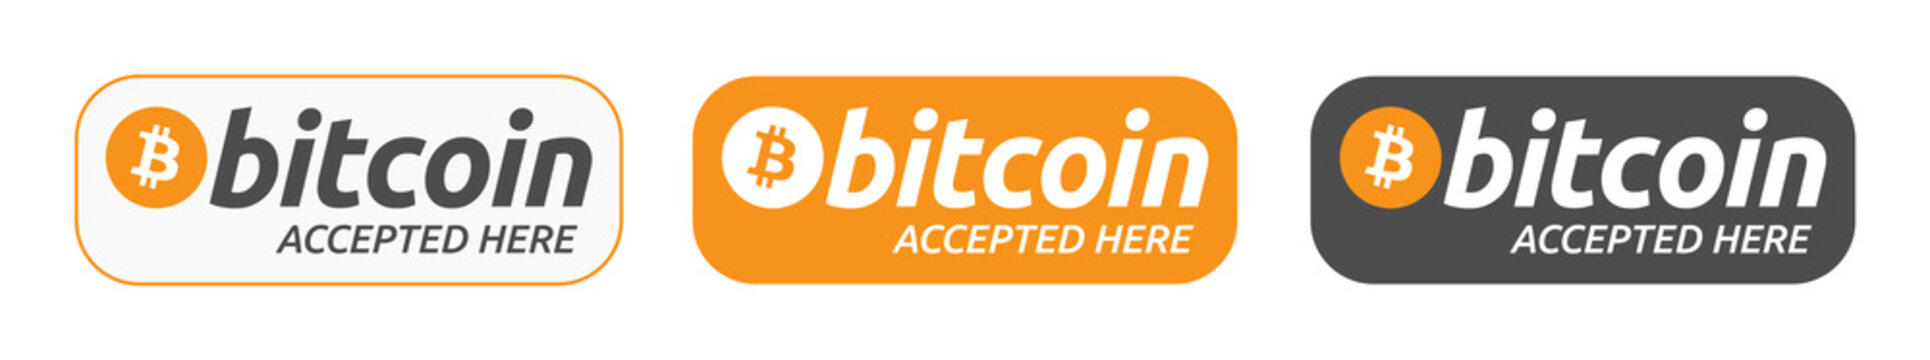 Bitcoin Accepted Here Banner Collection. Set of Banners to Show Bitcoin Cryptocurrency Payments are Accepted on Online Store. Pay with Bitcoin Button or Banner